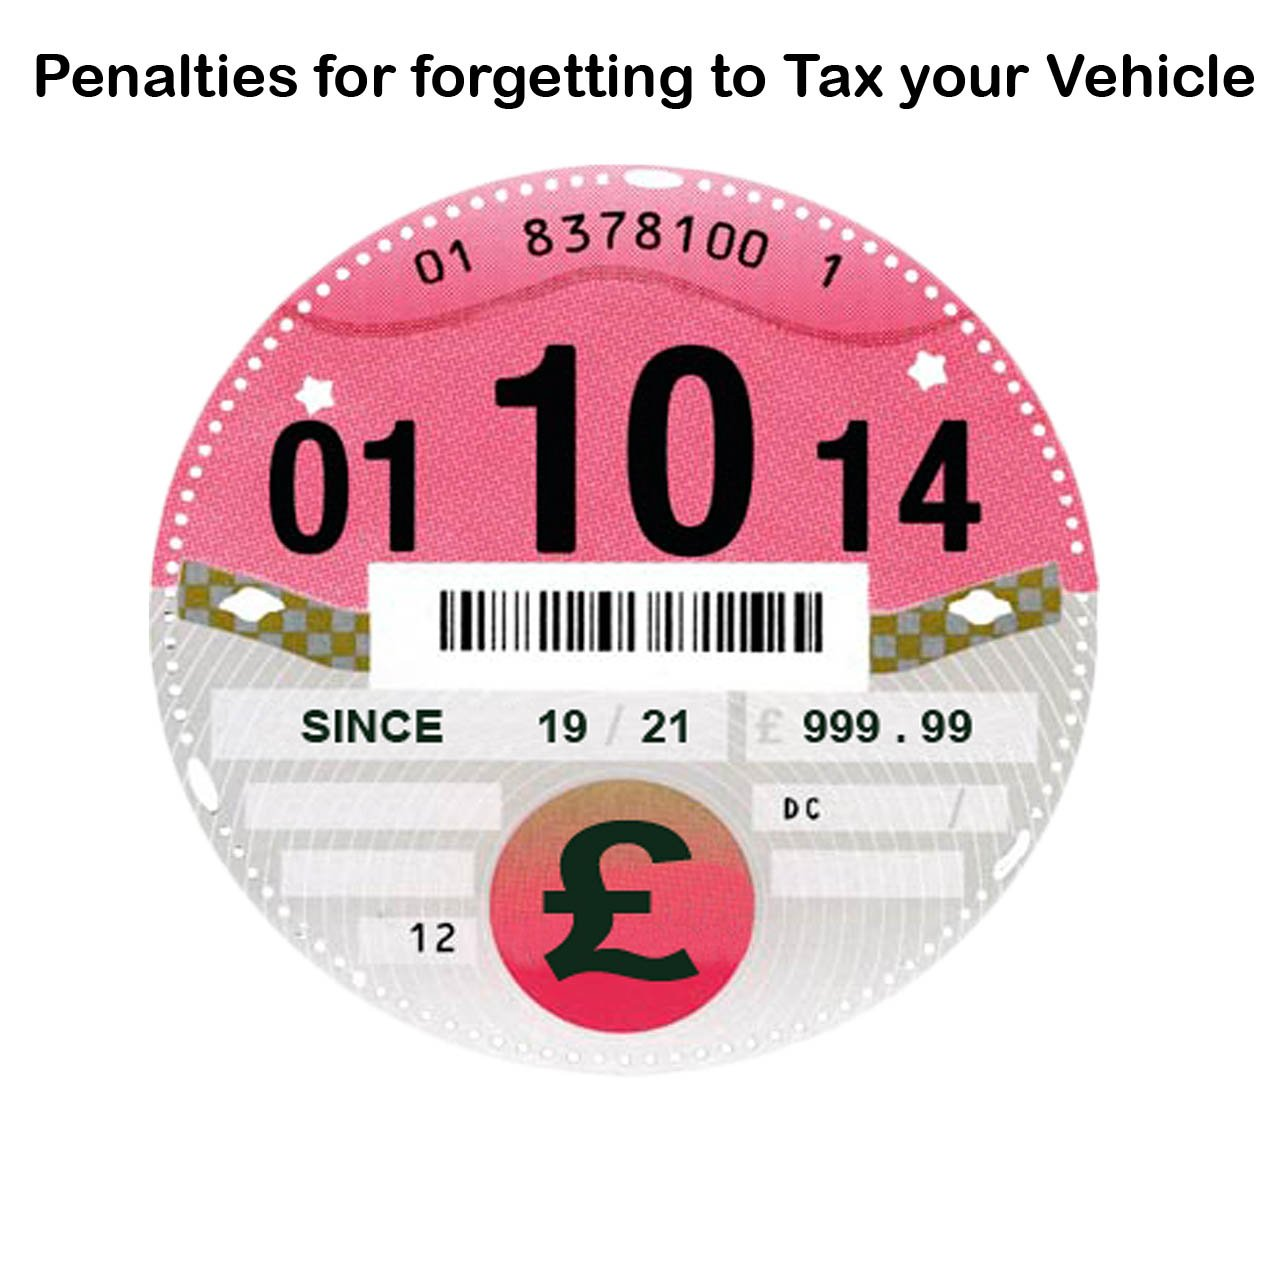 Fines for driving without Vehicle Tax 2020